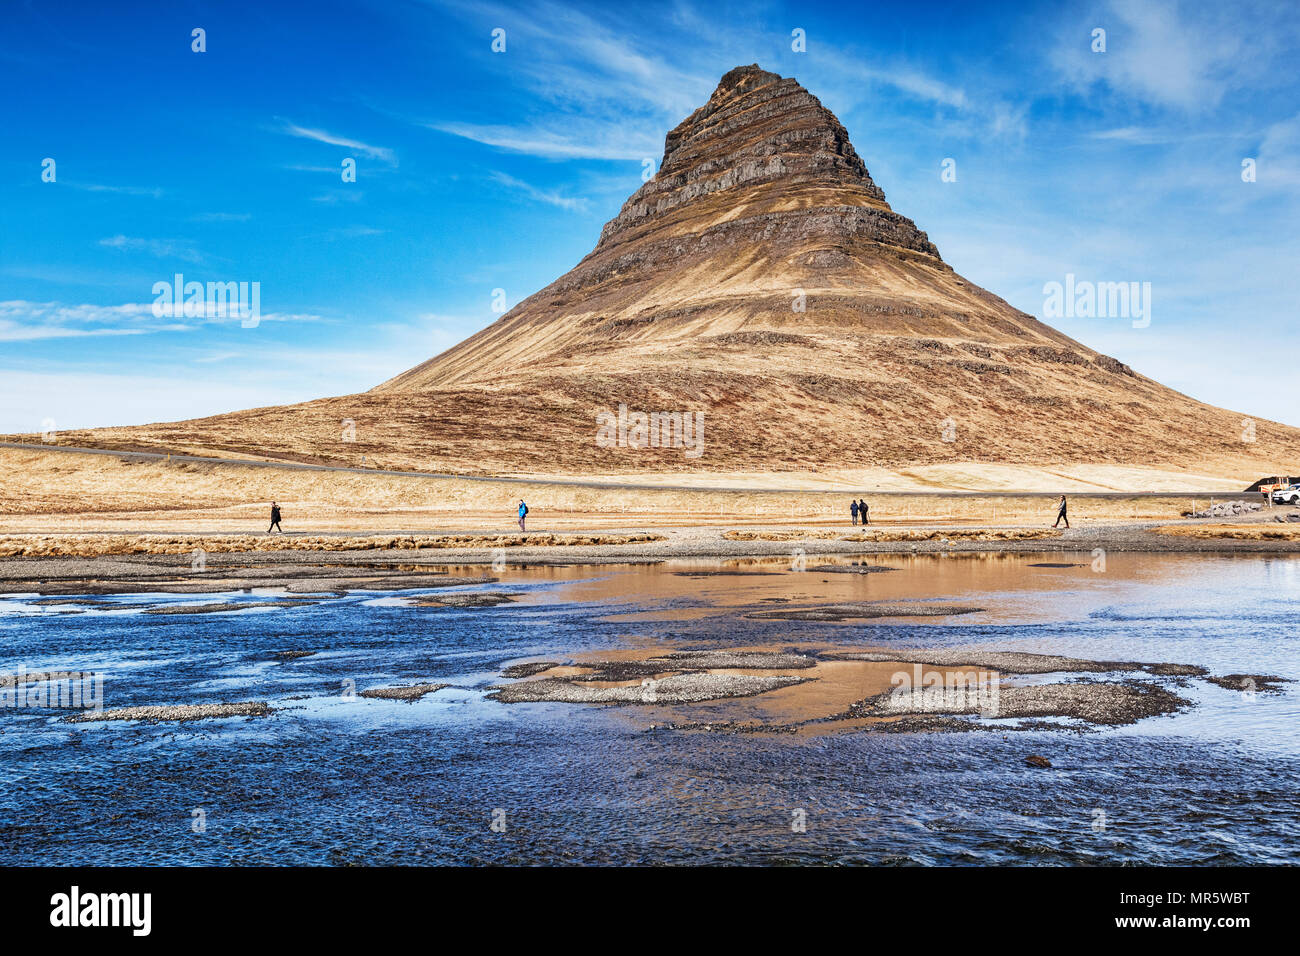 16 April 2018: Snaefellsnes Peninsula, West Iceland - Kirkjufell, famous mountain and icon of Iceland. - Stock Image